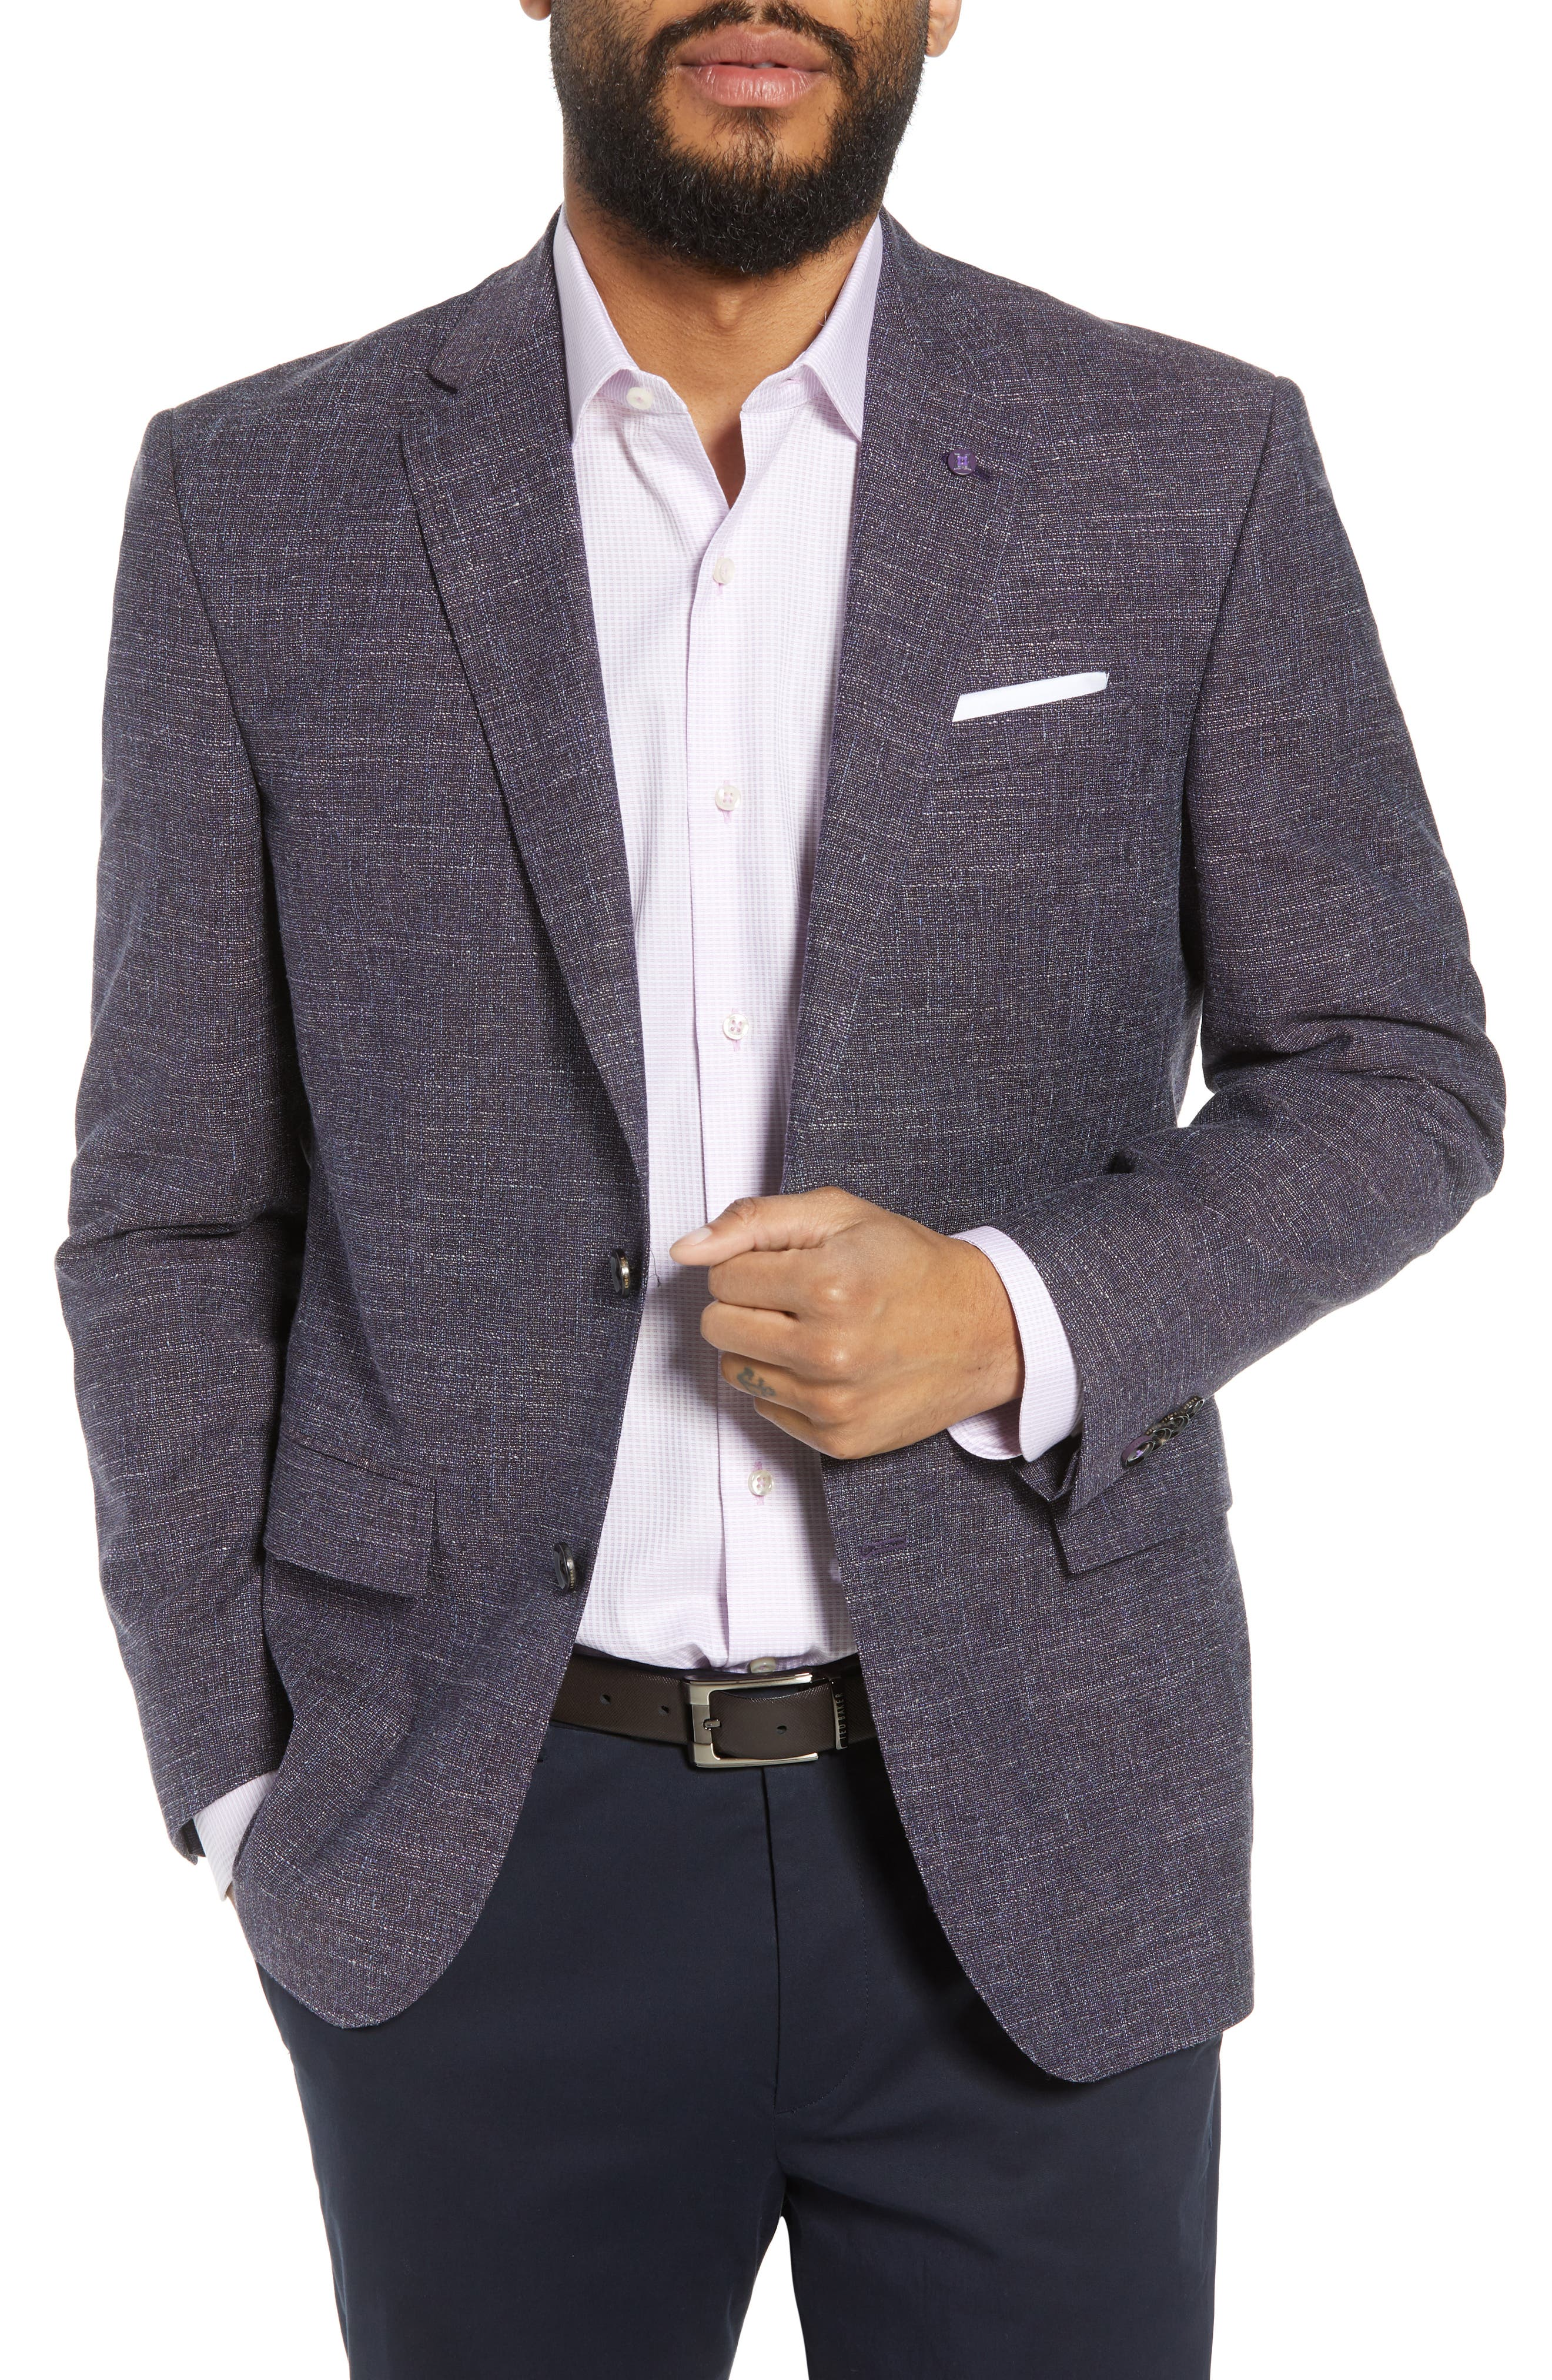 Jay Trim Fit Slubbed Wool, Cotton & Linen Sport Coat,                         Main,                         color, 930